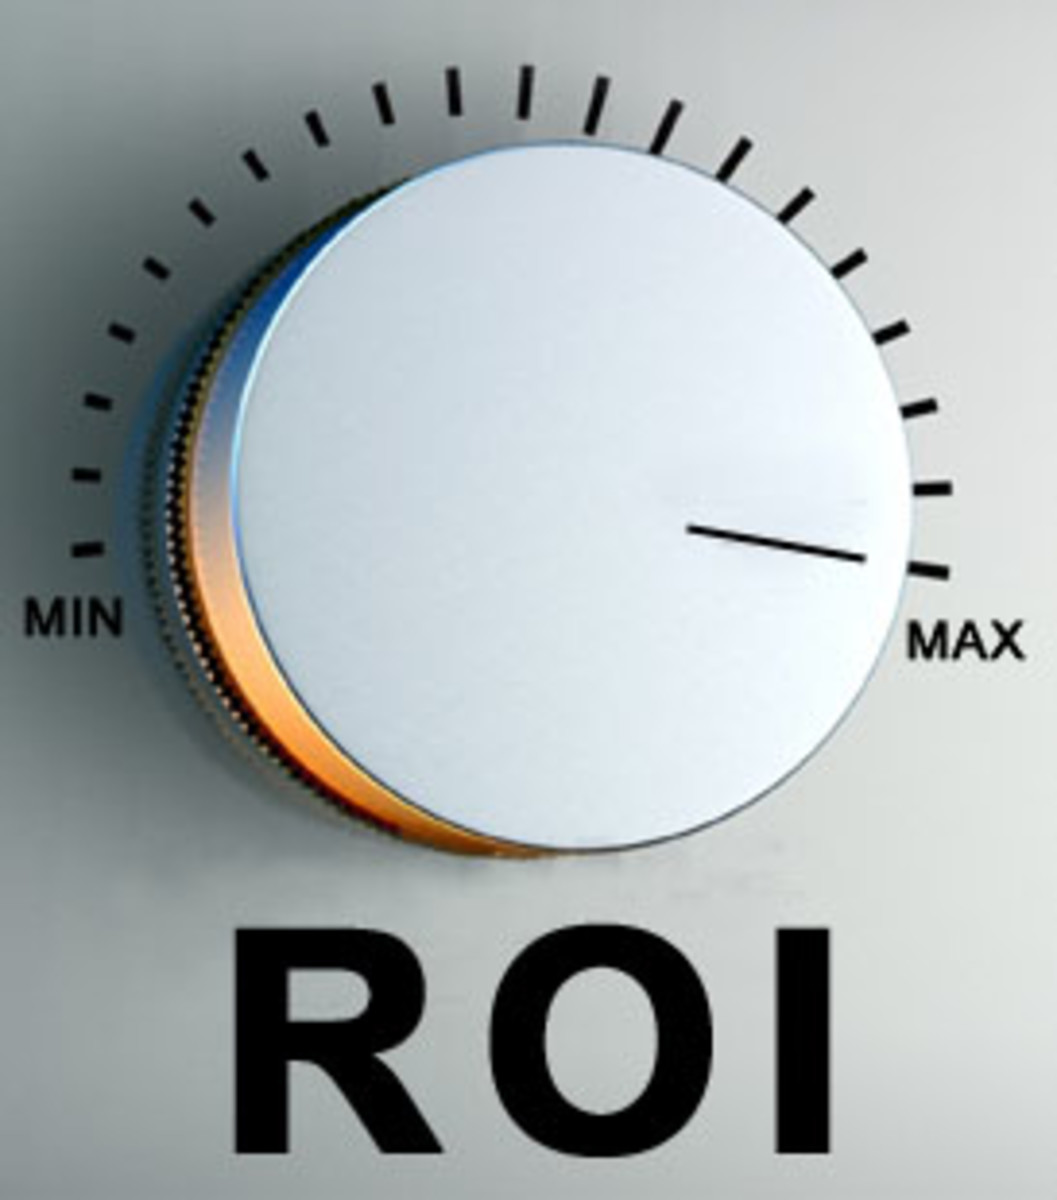 visual of silver colored ROI knob with min and max